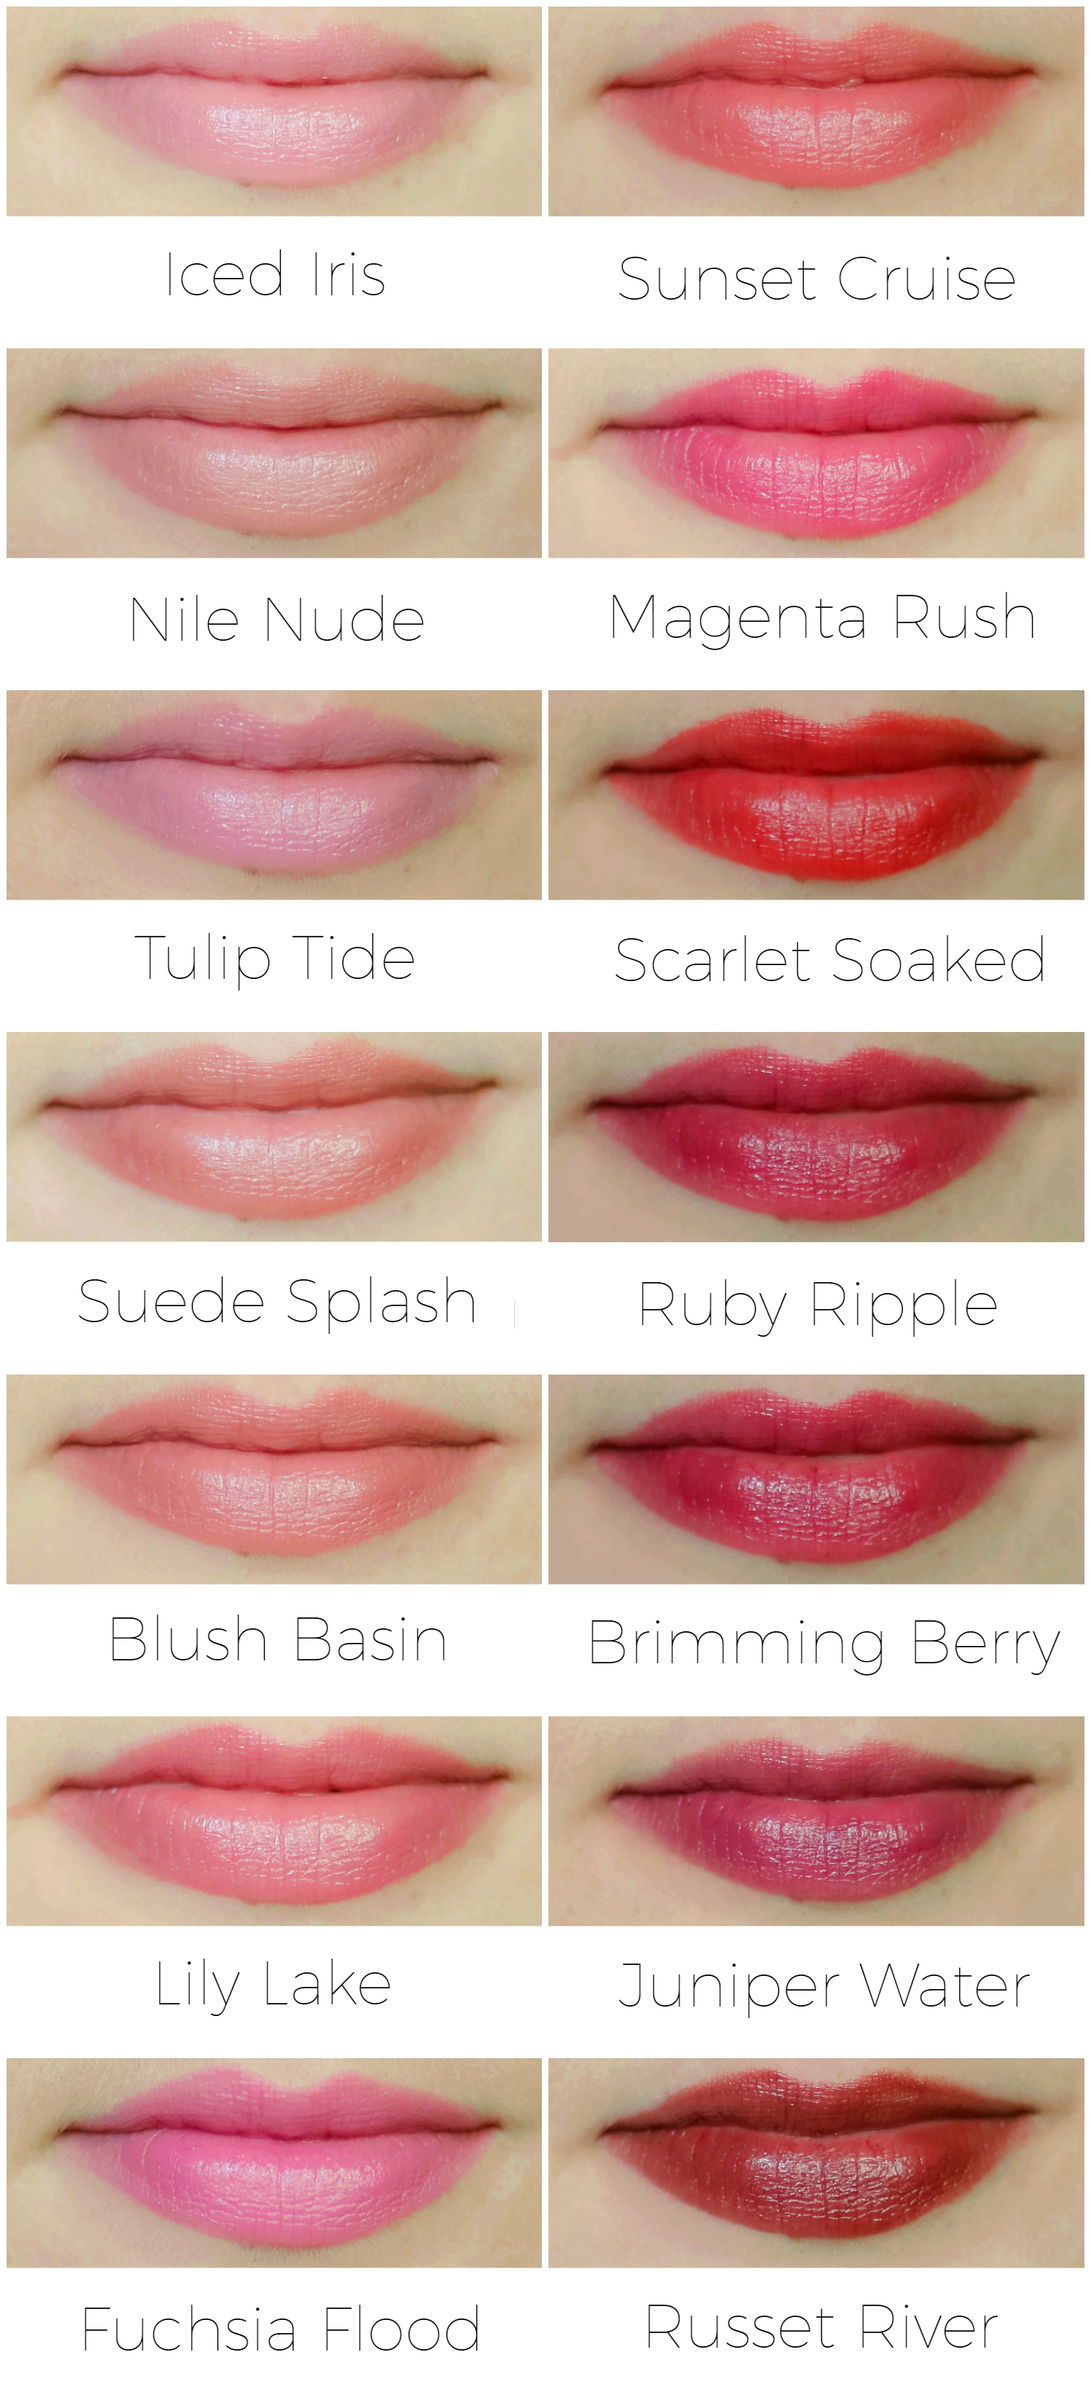 burts-bees-lipstick-swatches-on-lips-ashley-brooke-nicholas